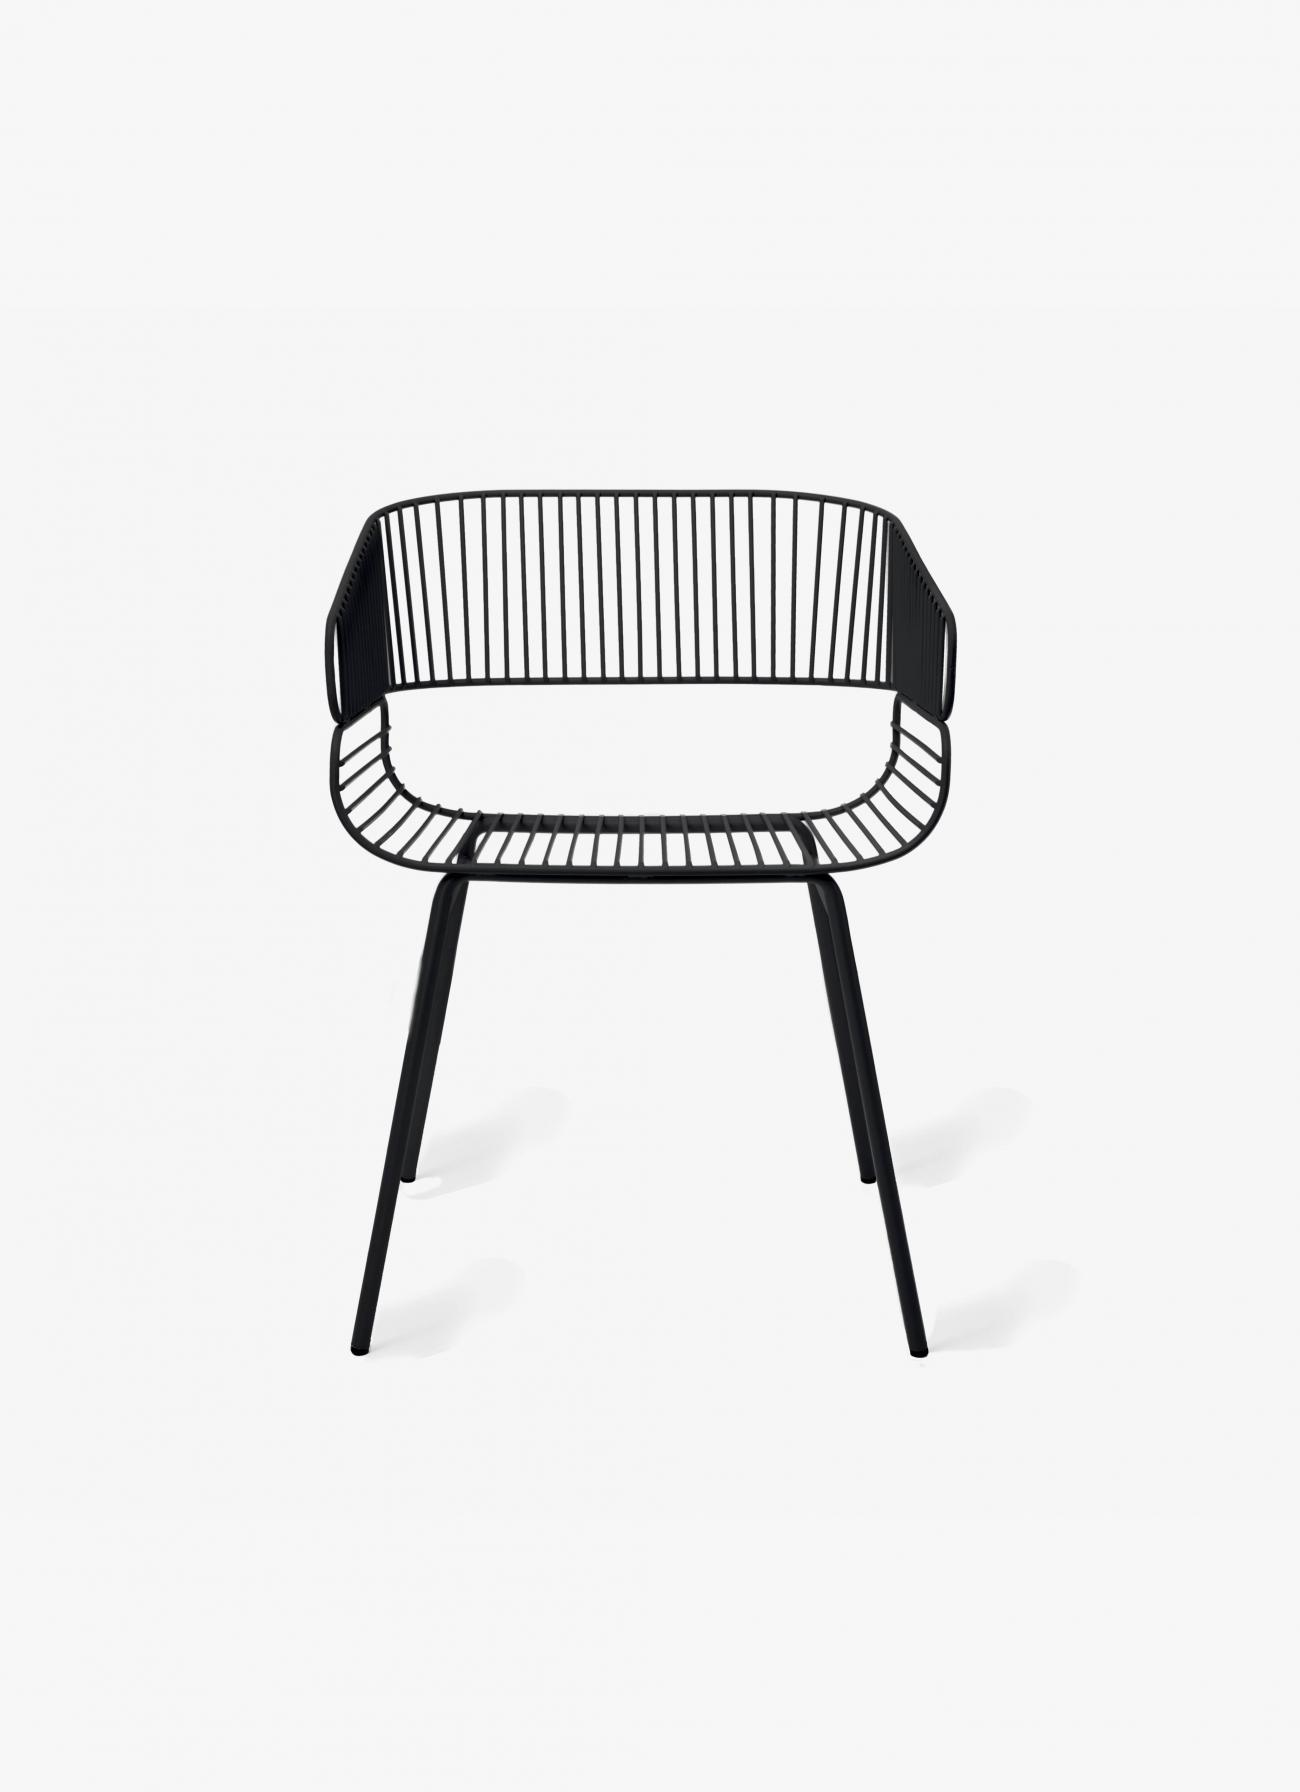 Petite Friture - Trame Chair - black